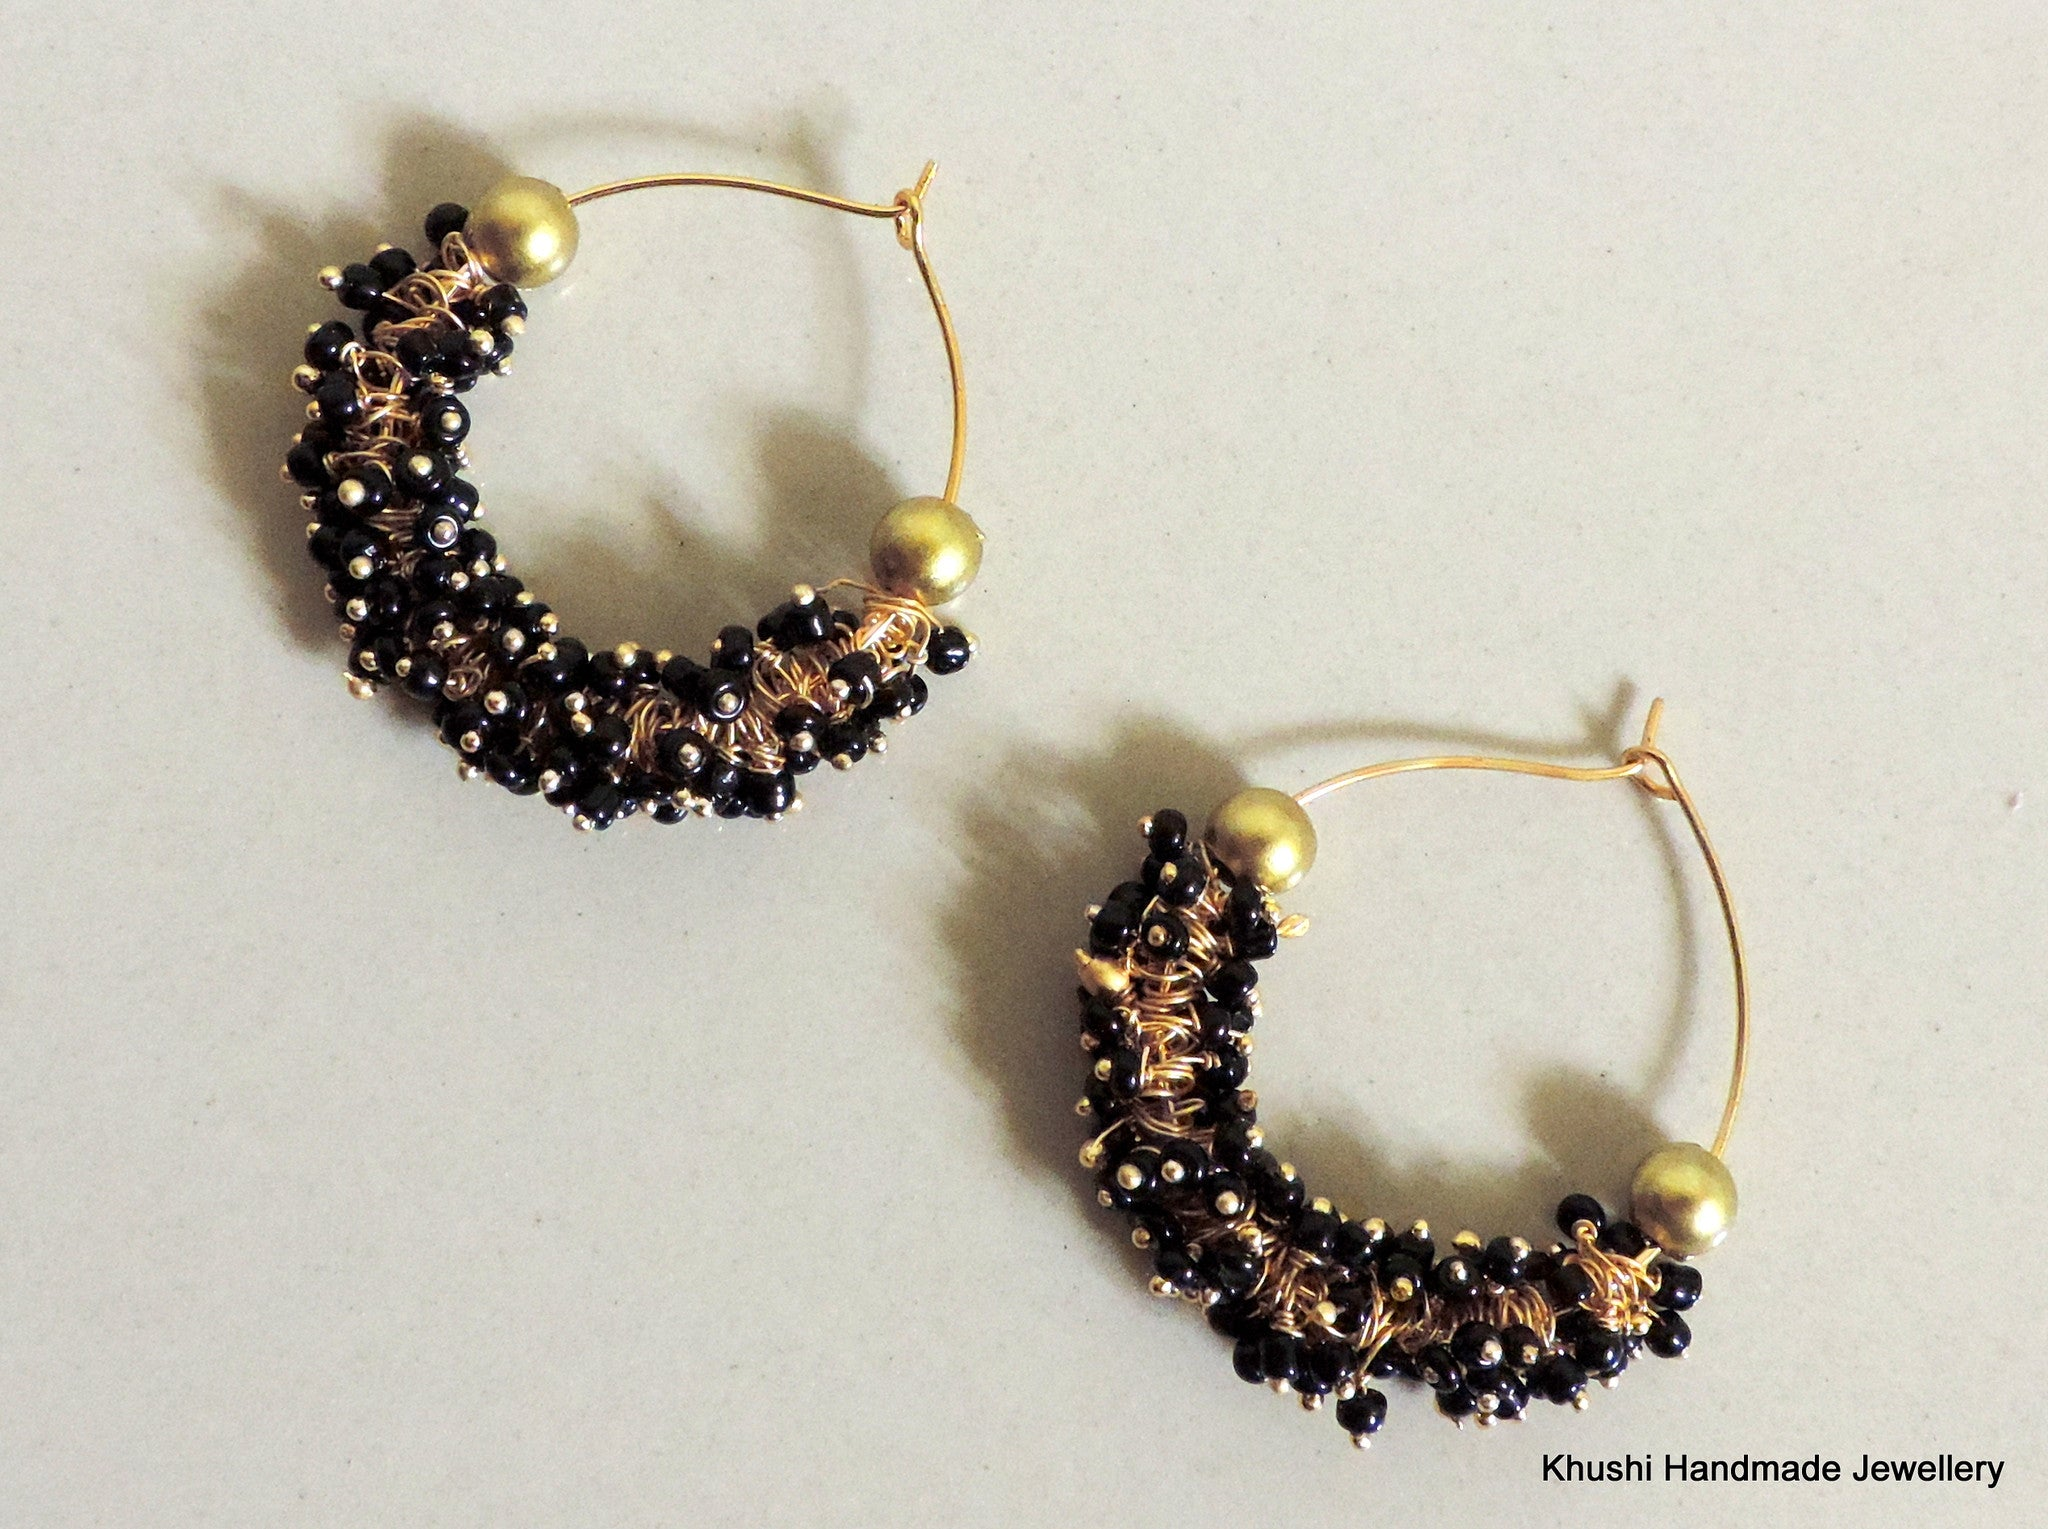 Handcrafted black hoops - Khushi Handmade Jewellery